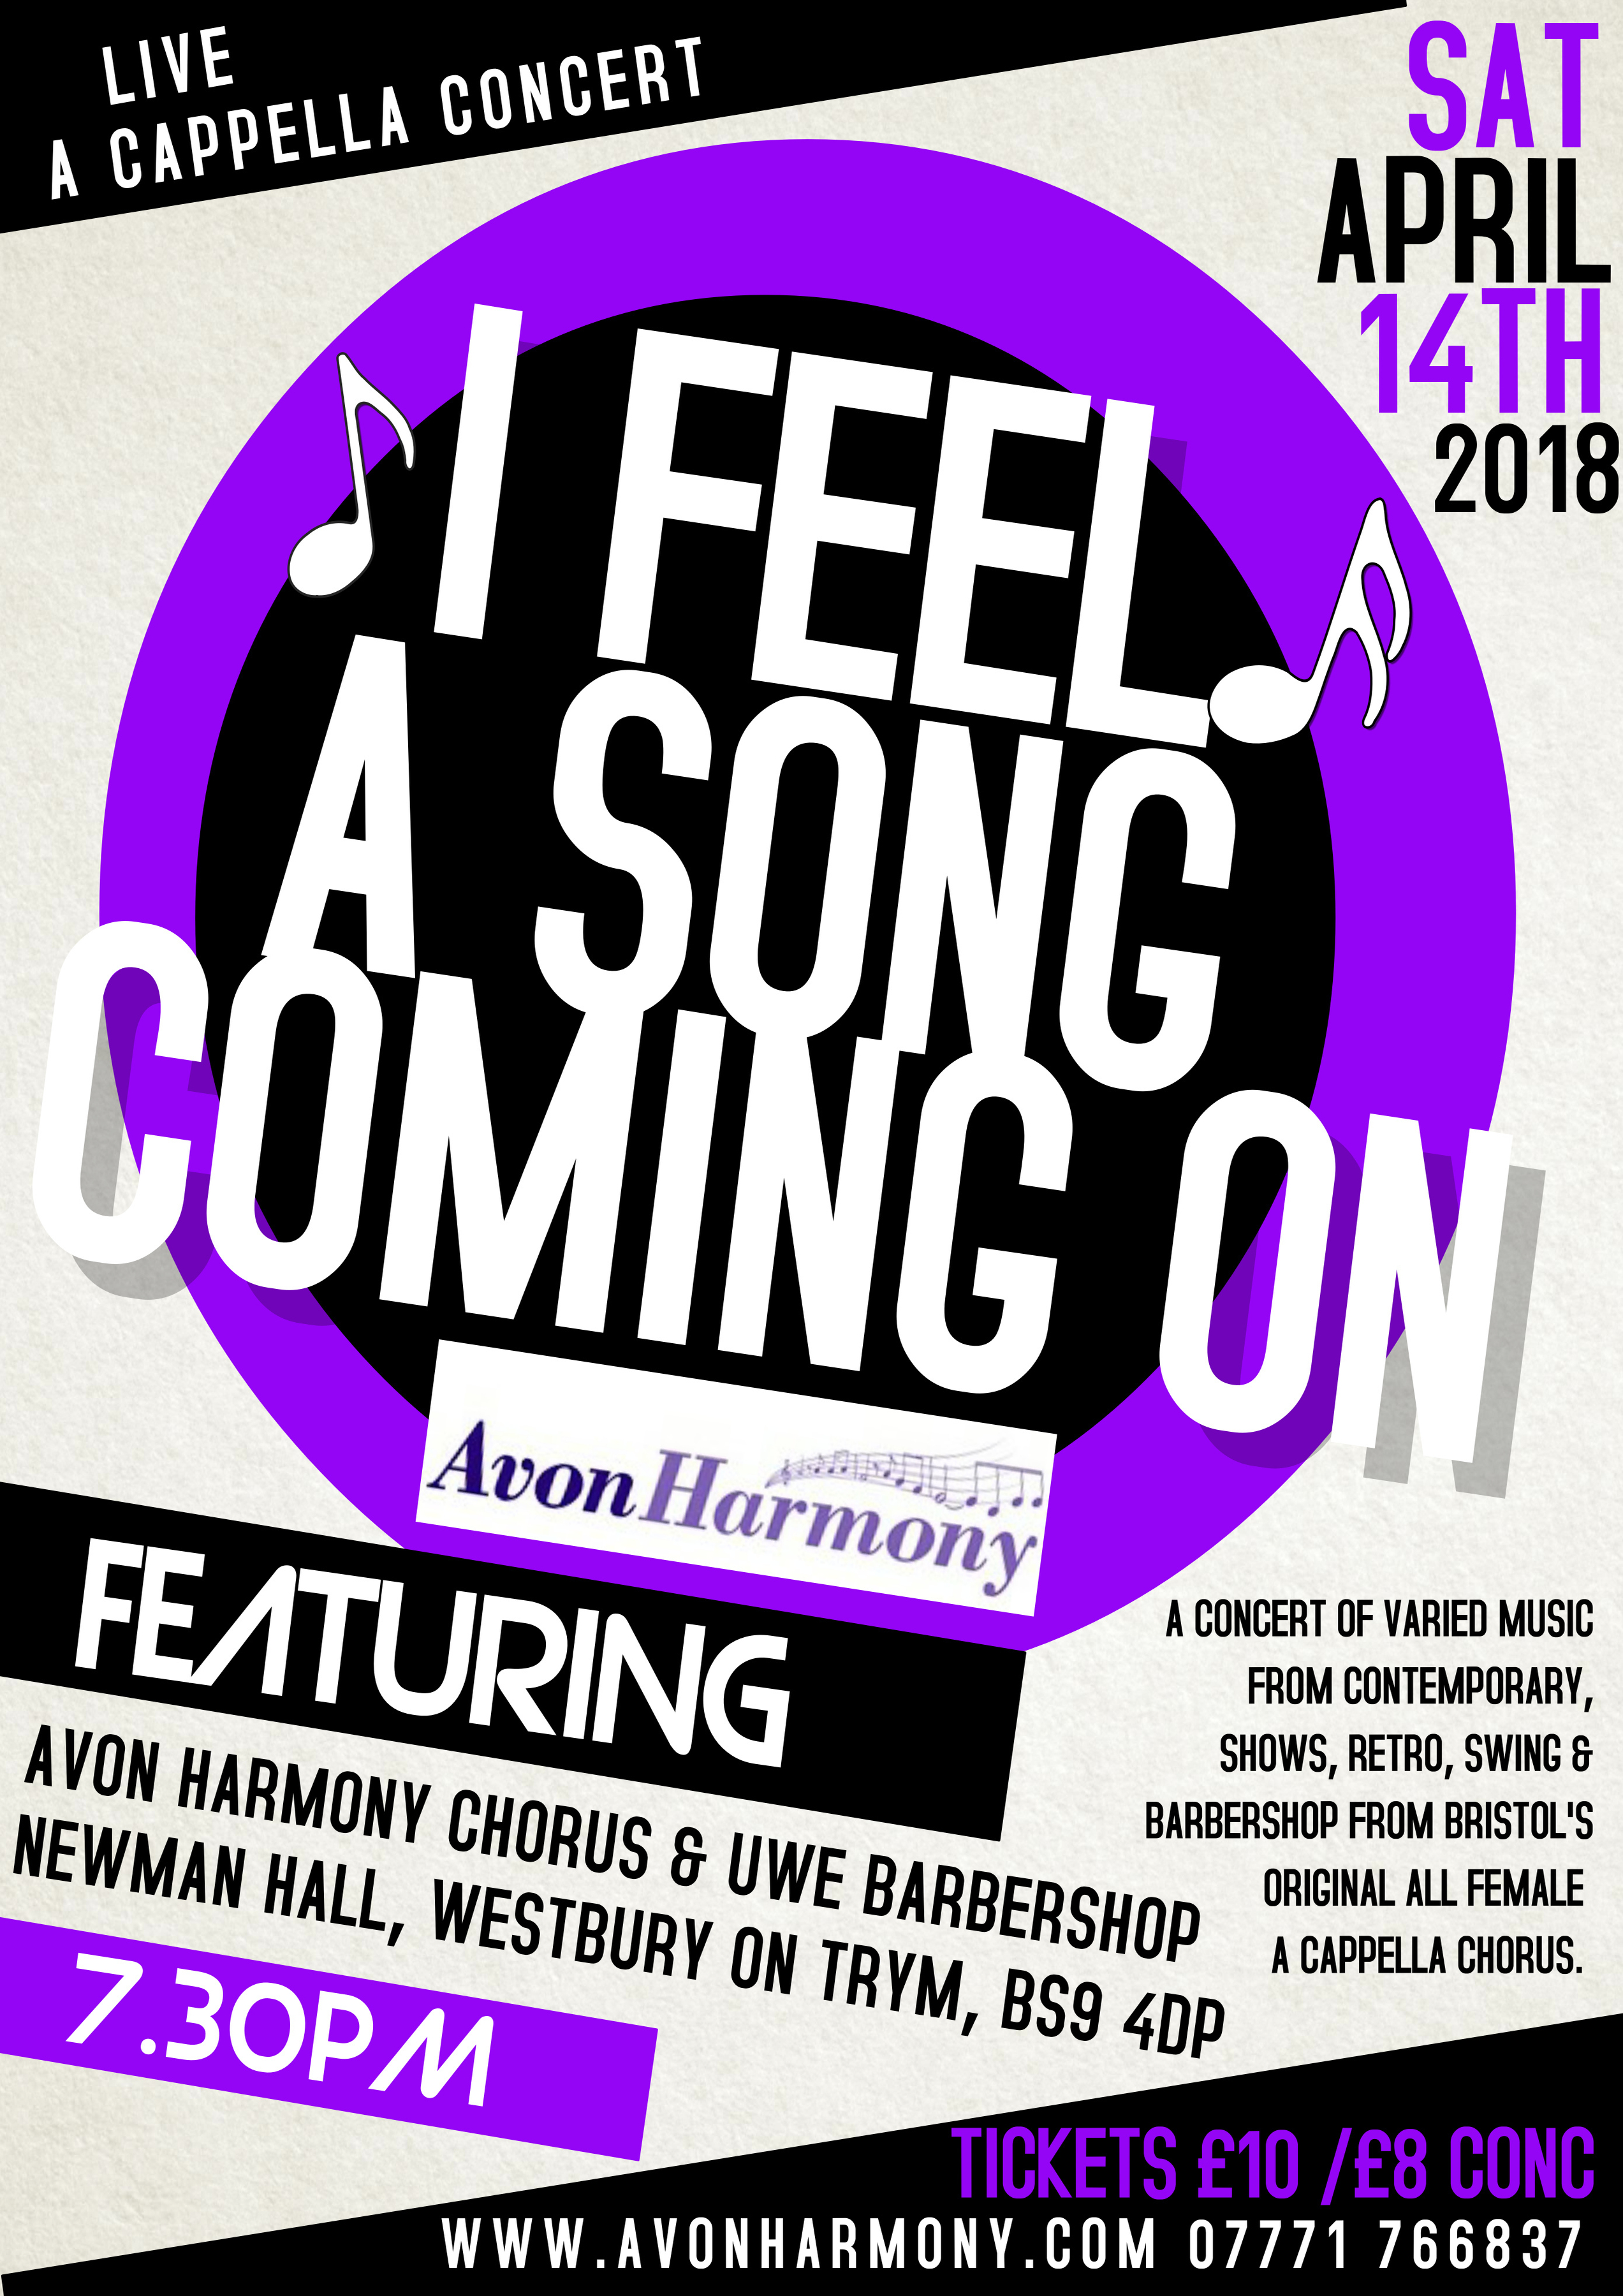 "Avon Harmony Chorus ""I Feel A Song Coming On"" 2018 Concert."